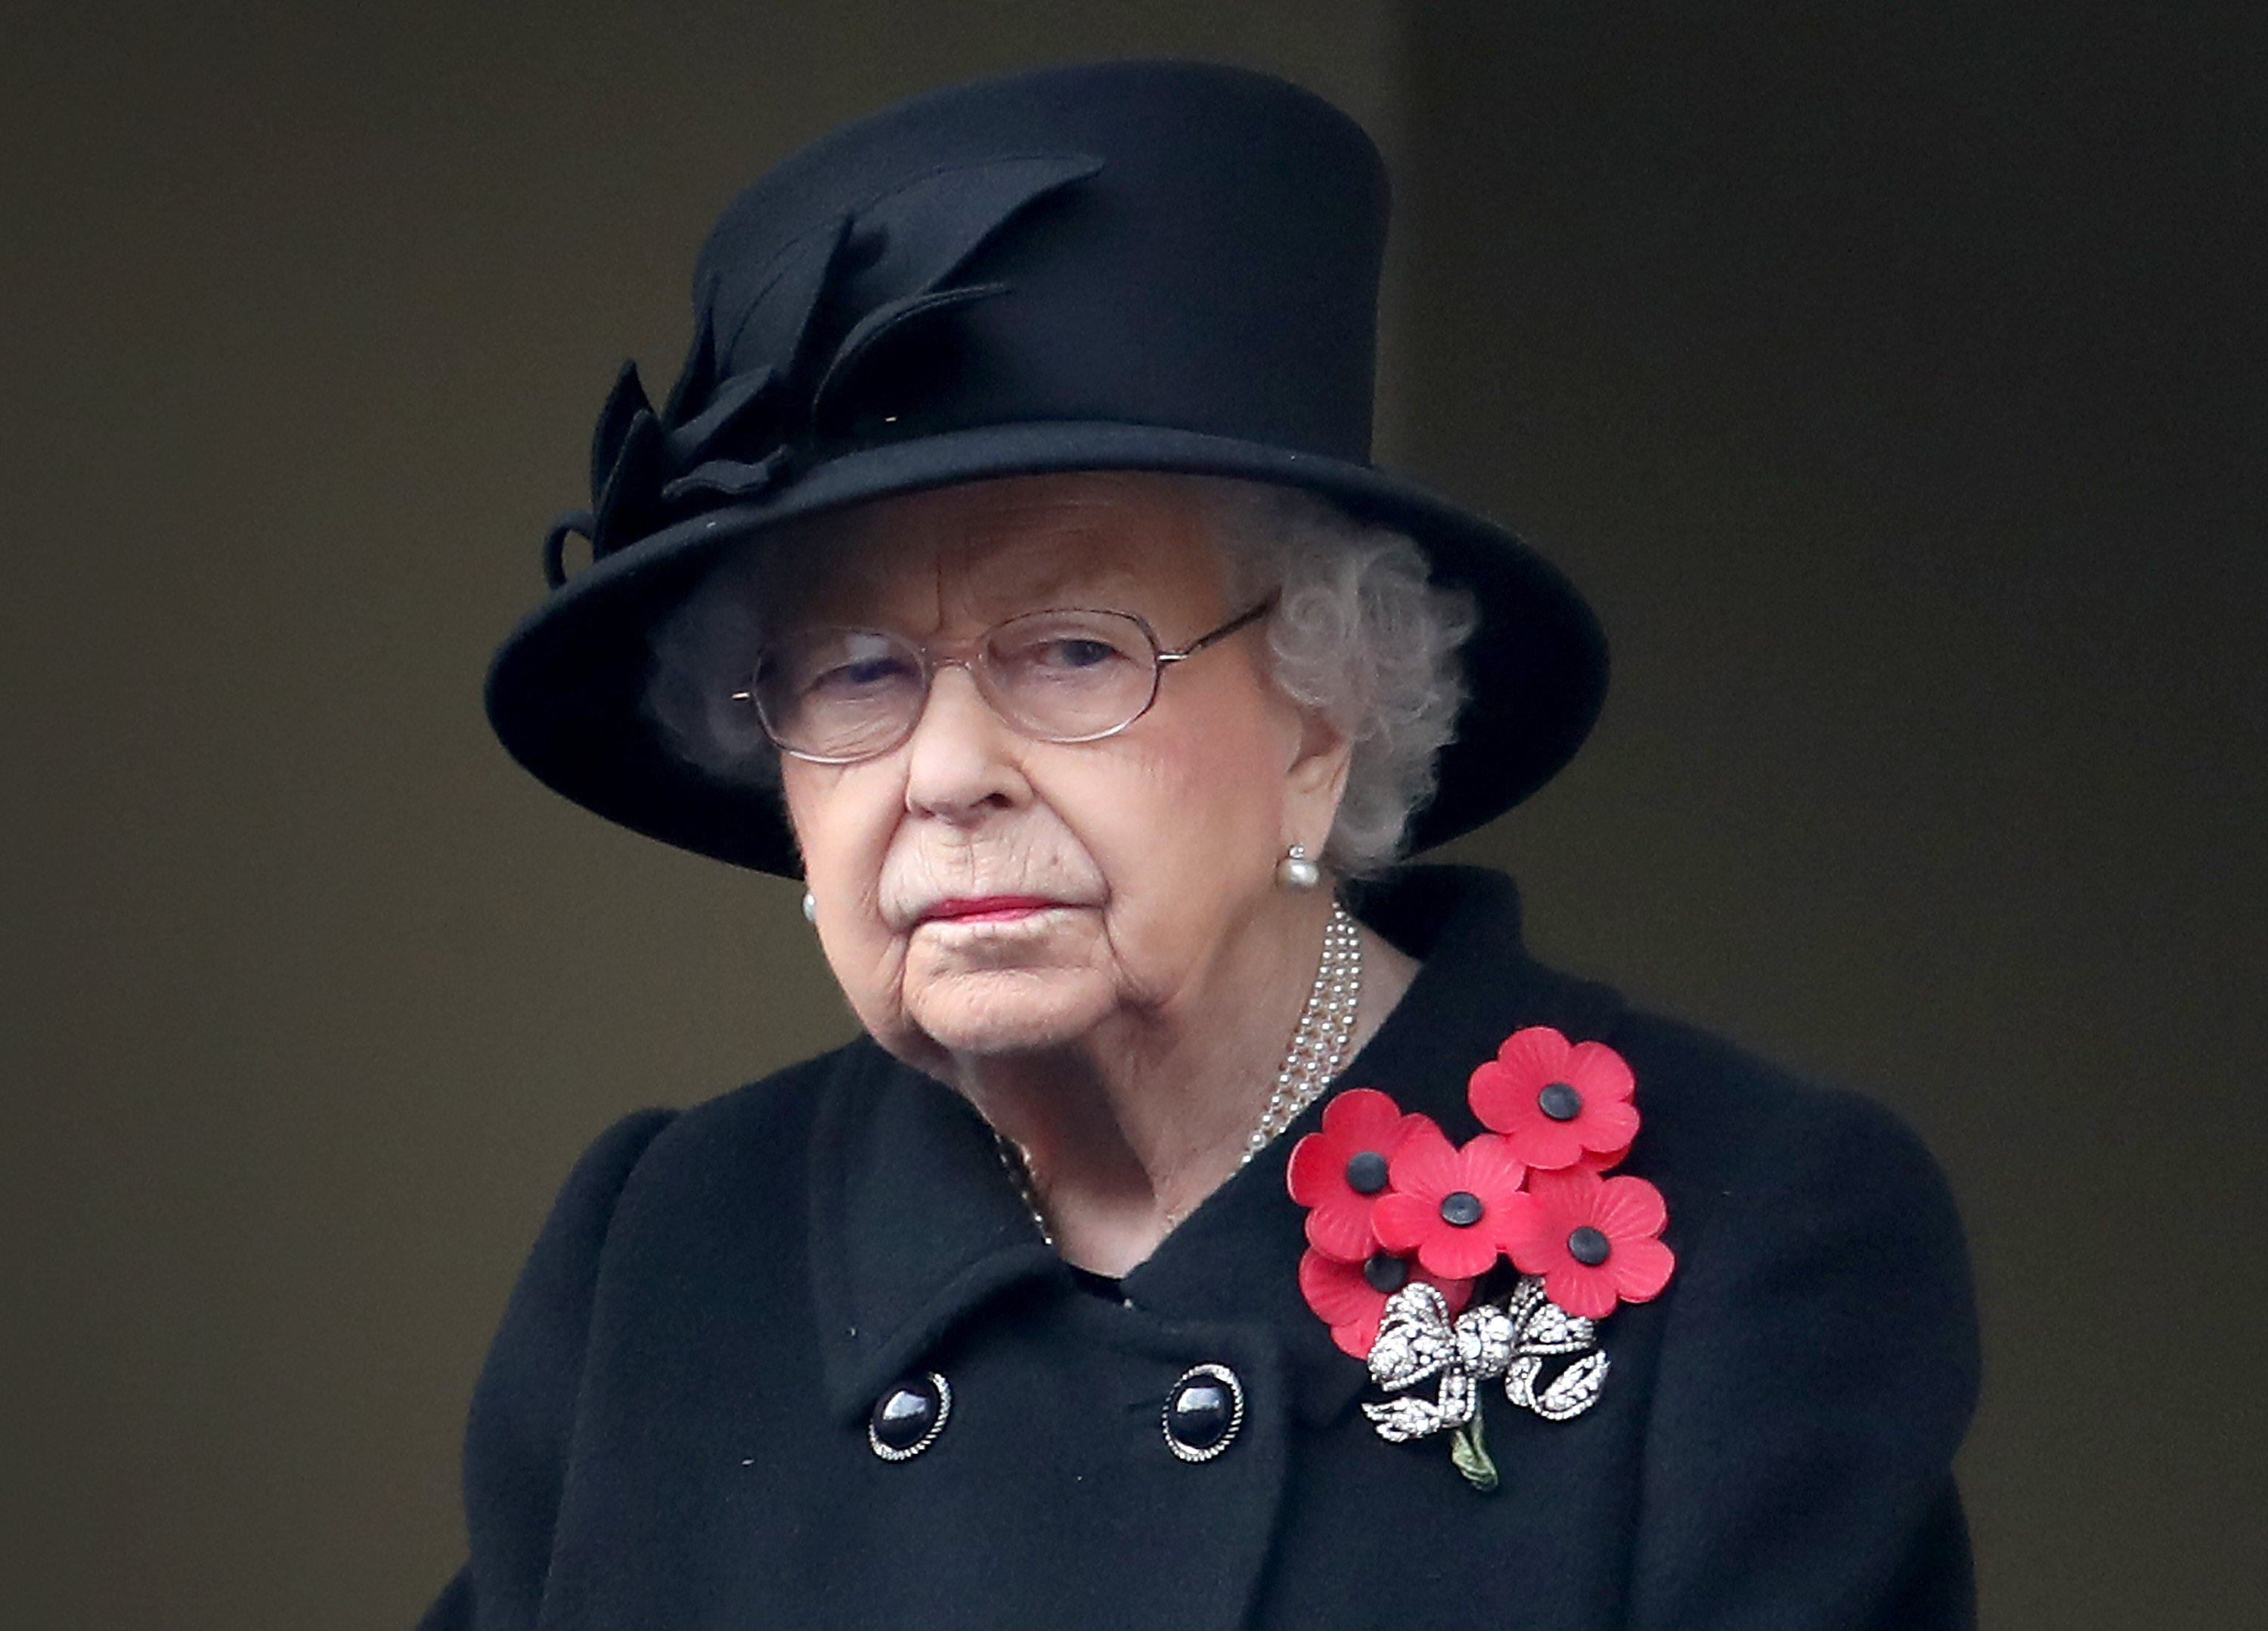 Queen Elizabeth at the Service of Remembrance at the Cenotaph  in November 2020 | Photo: Getty Images